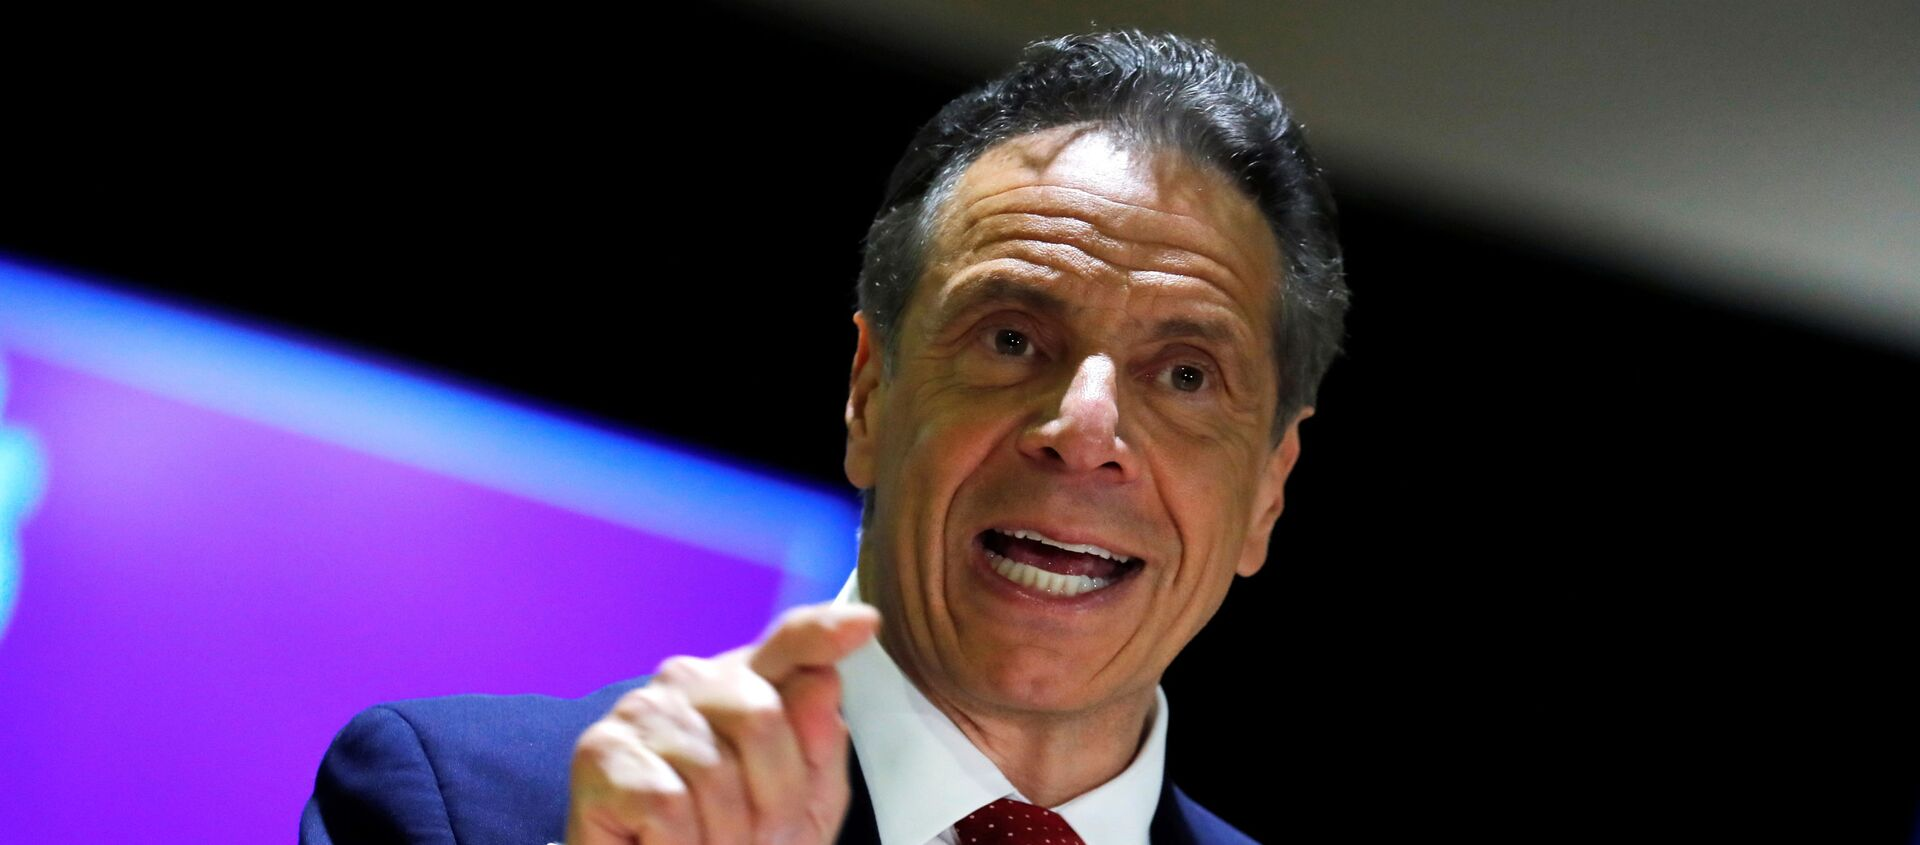 New York Governor Andrew Cuomo speaks at an event to announce five new walk-in pop-up vaccination sites for New York City Bodega, grocery store and supermarket workers amid the coronavirus disease (COVID-19) pandemic, in the Harlem section of Manhattan in New York City, New York, U.S., April 23, 2021. - Sputnik International, 1920, 26.04.2021